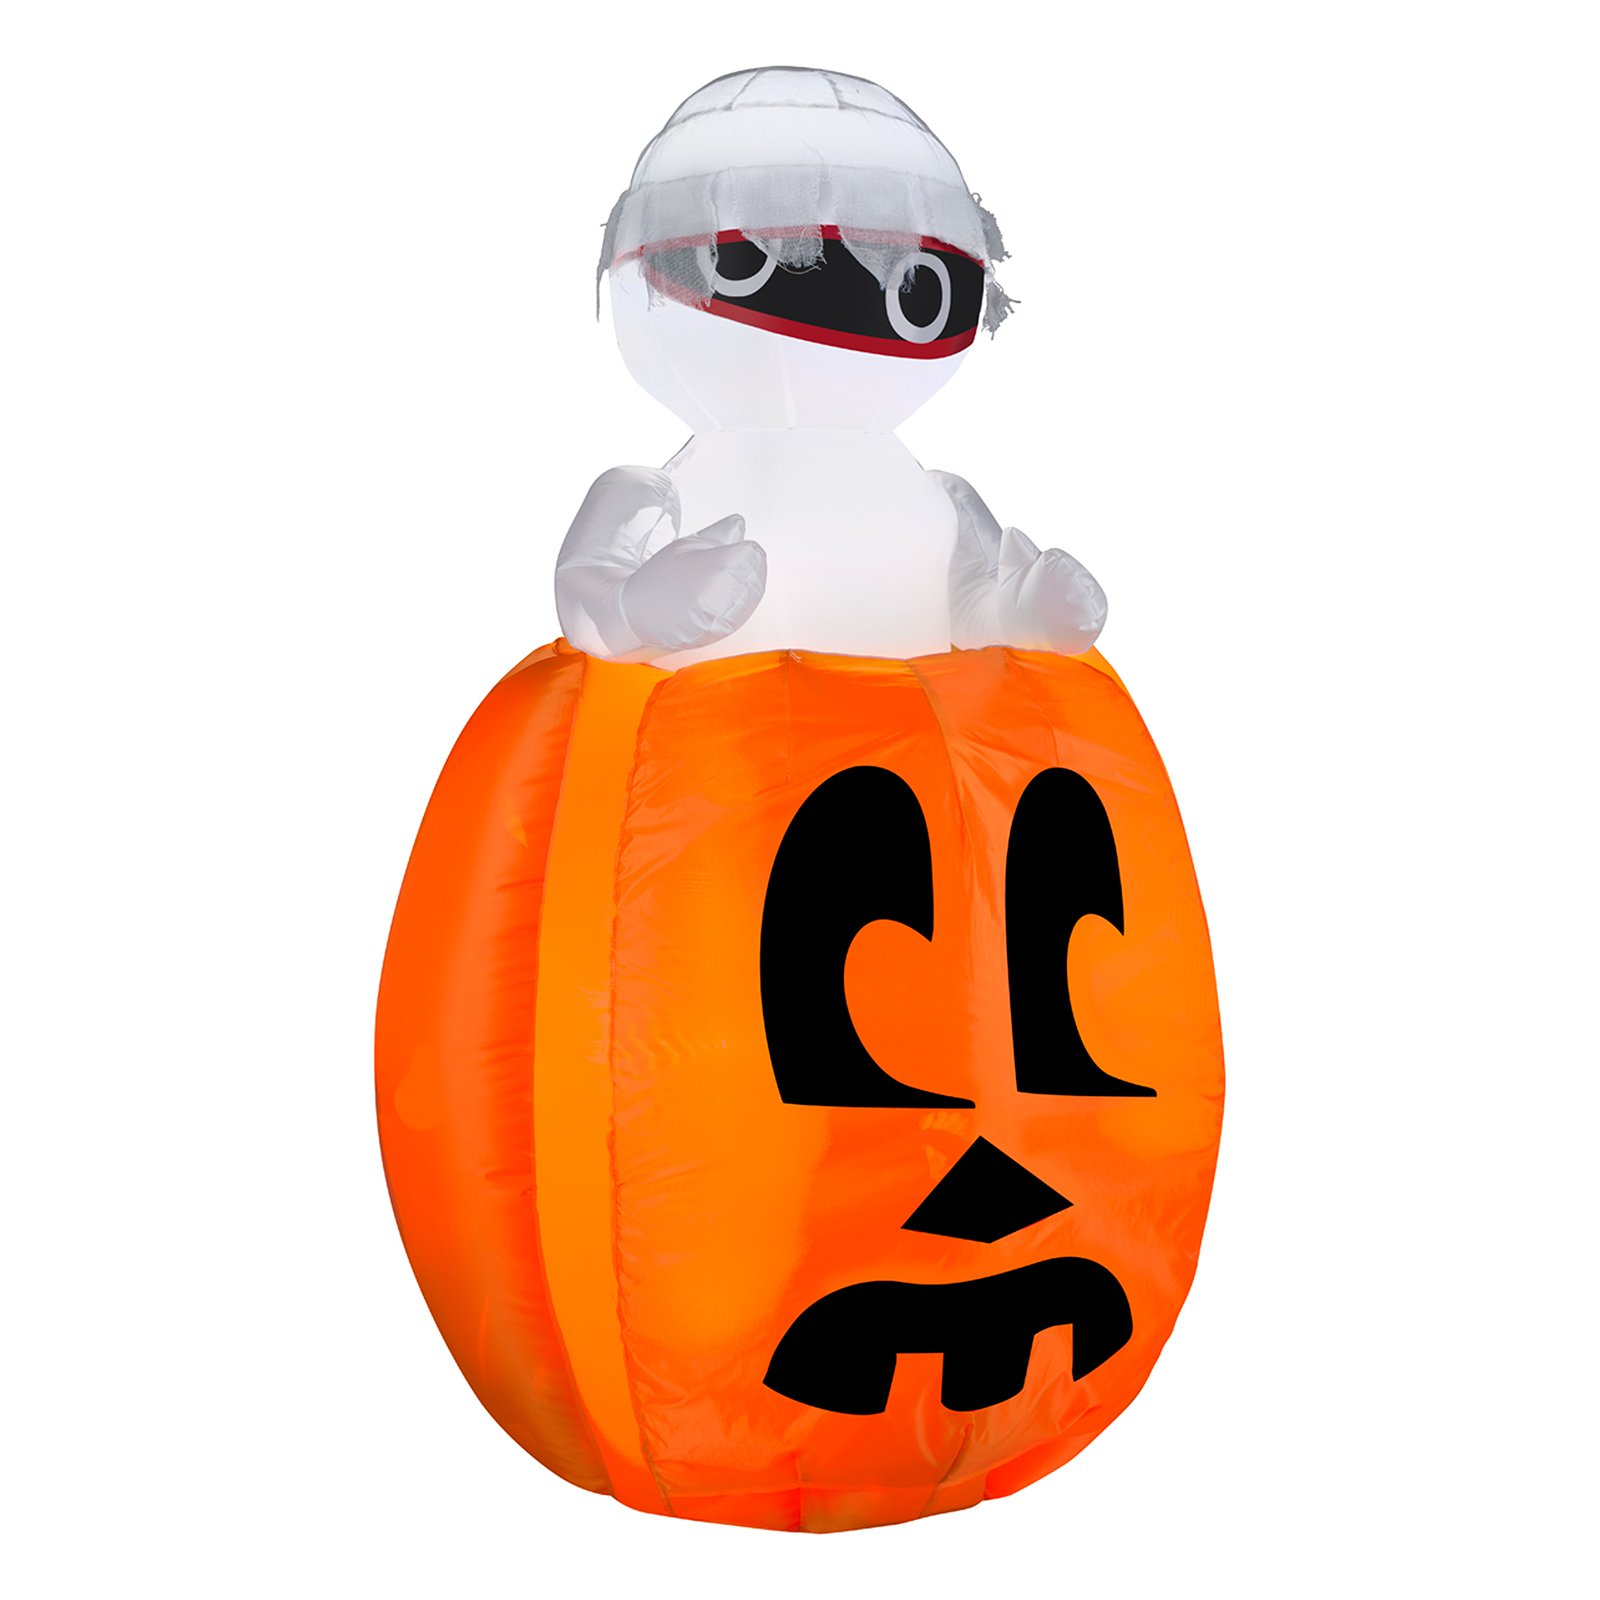 Gemmy Airblown Peeking Mummy Out Of Pumpkin Inflatable